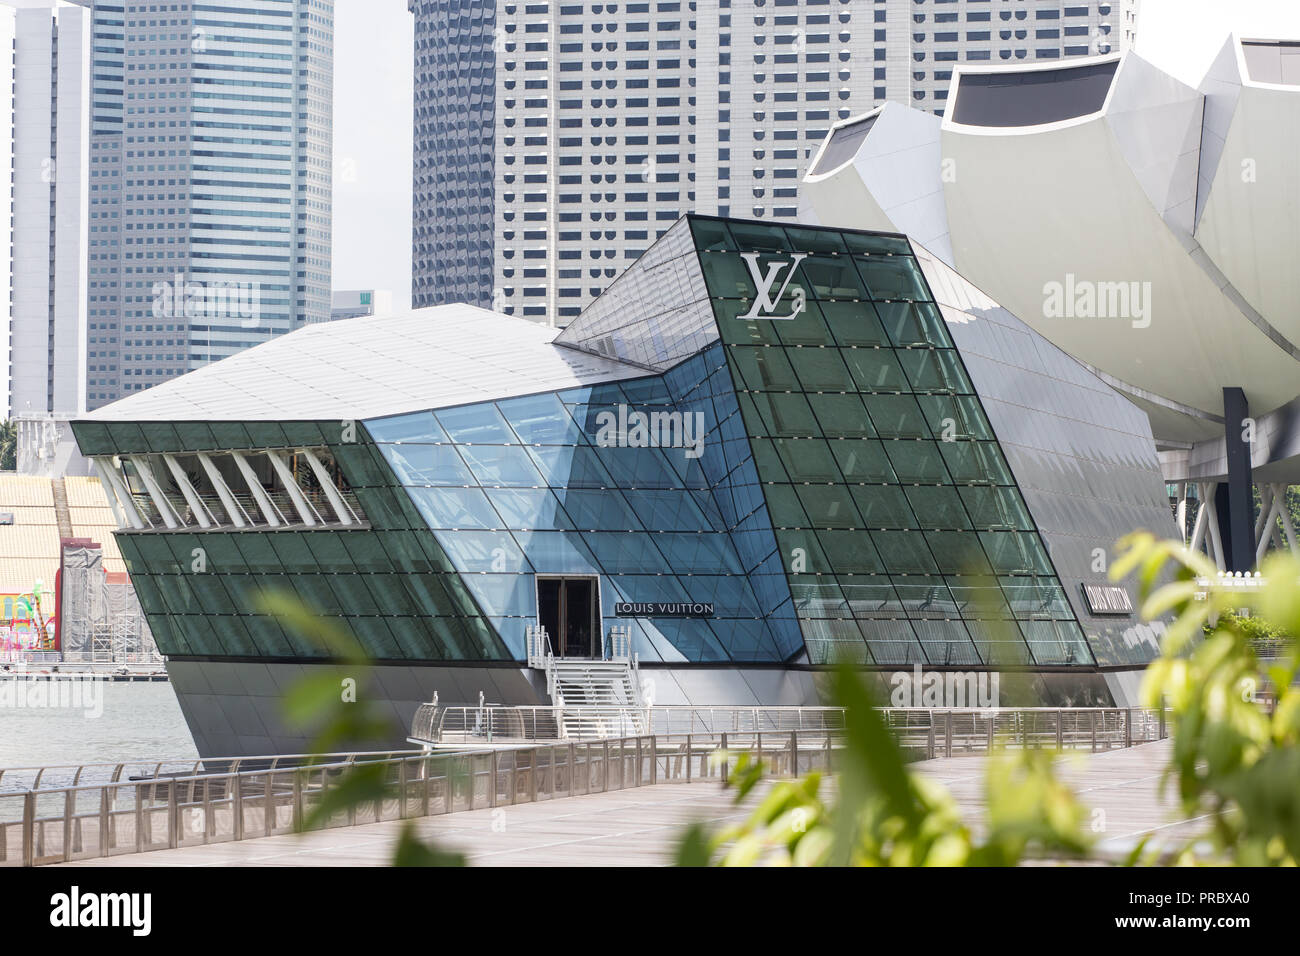 Architect Moshe Safdie and designer Peter Marino have collaborated to create the structure and interiors of the 'louis vuitton' in Singapore. - Stock Image